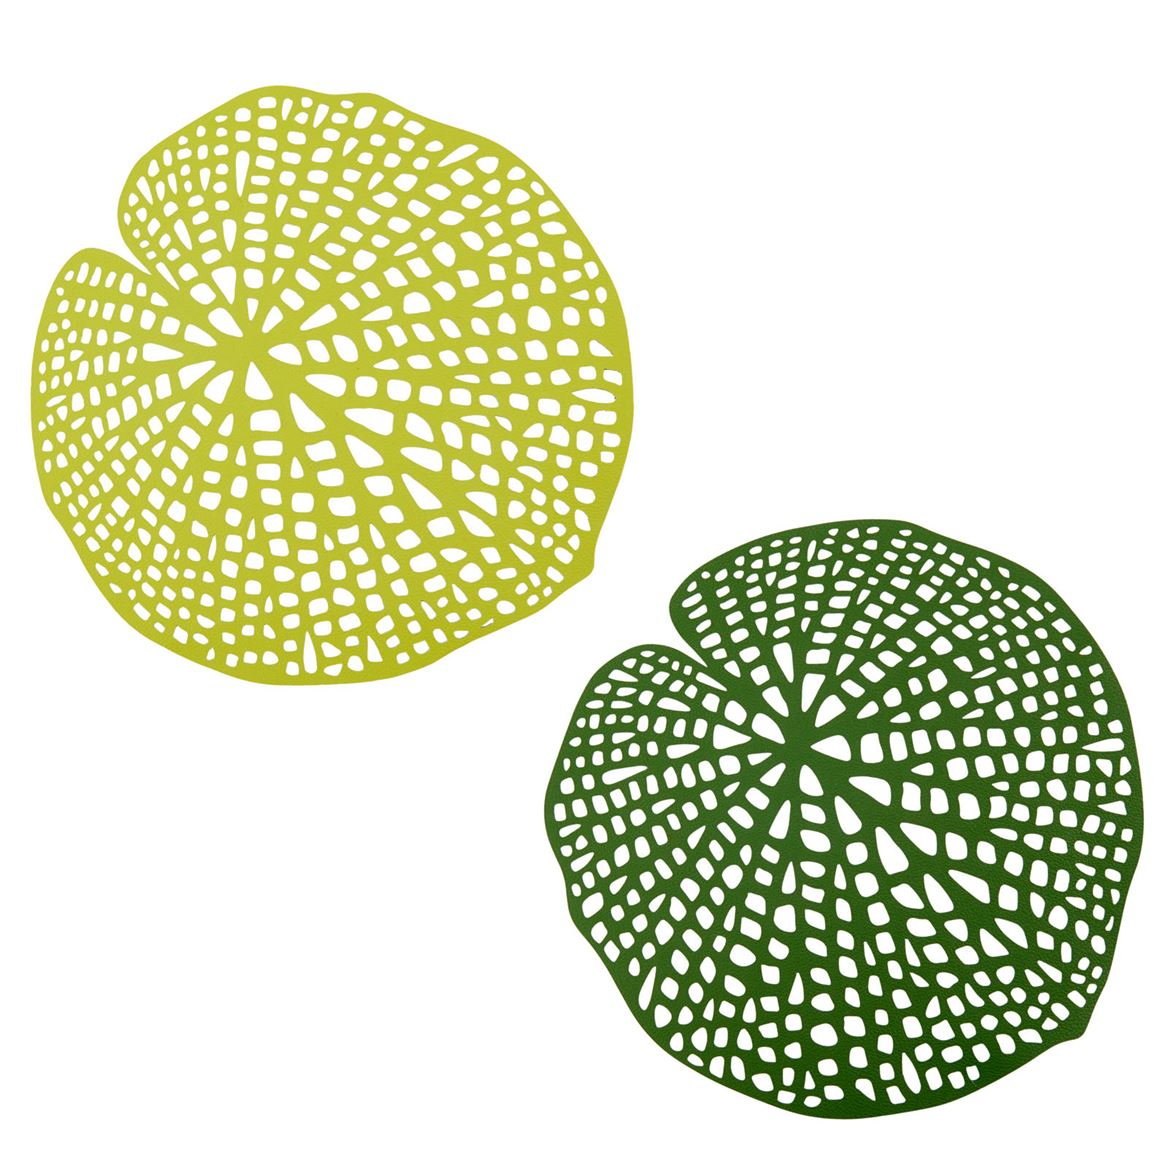 WATER LILY Individual verde W 38 x L 38 cm_water-lily-individual-verde-w-38-x-l-38-cm